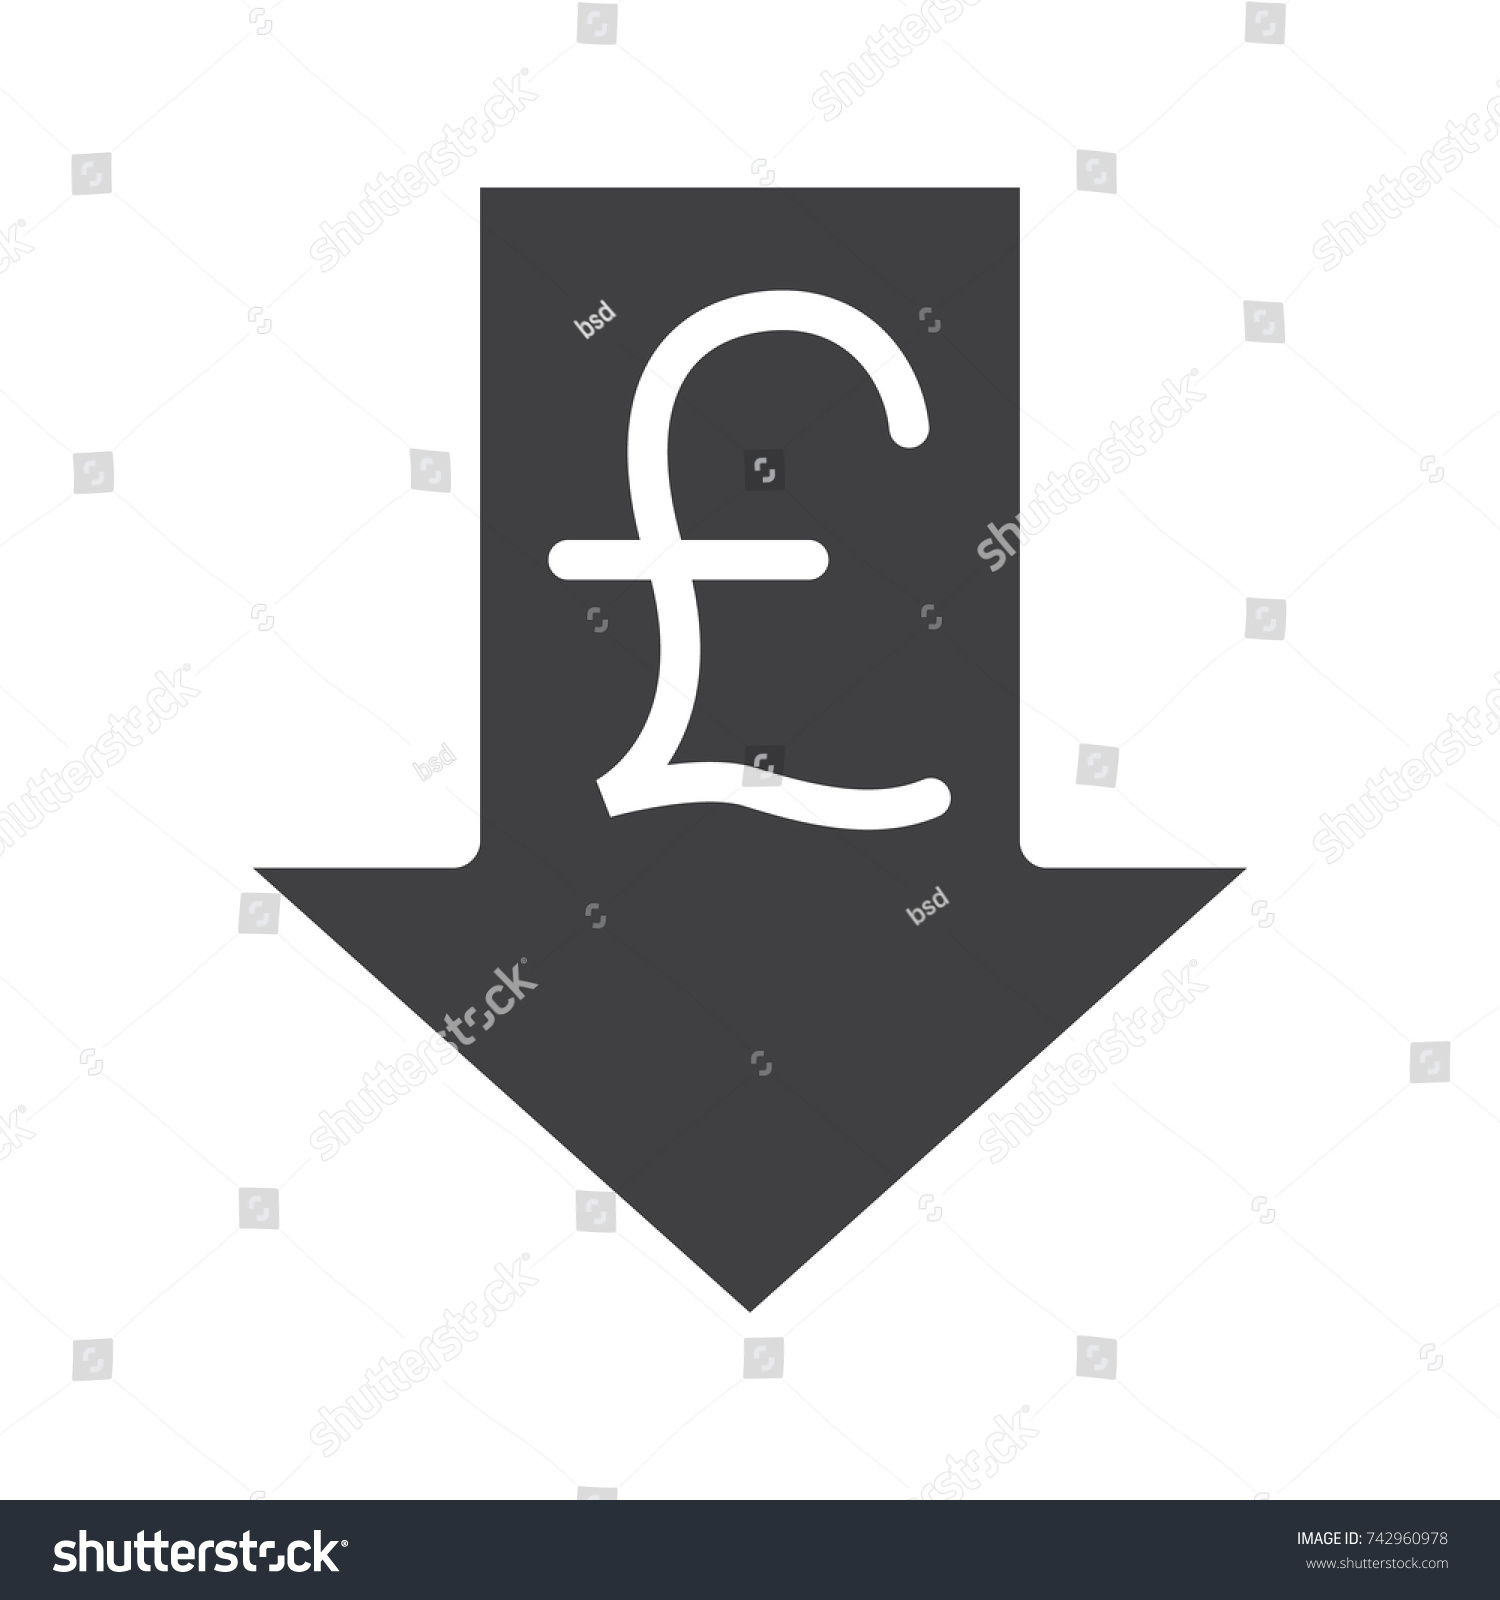 Pound Rate Falling Glyph Icon Silhouette Stock Illustration